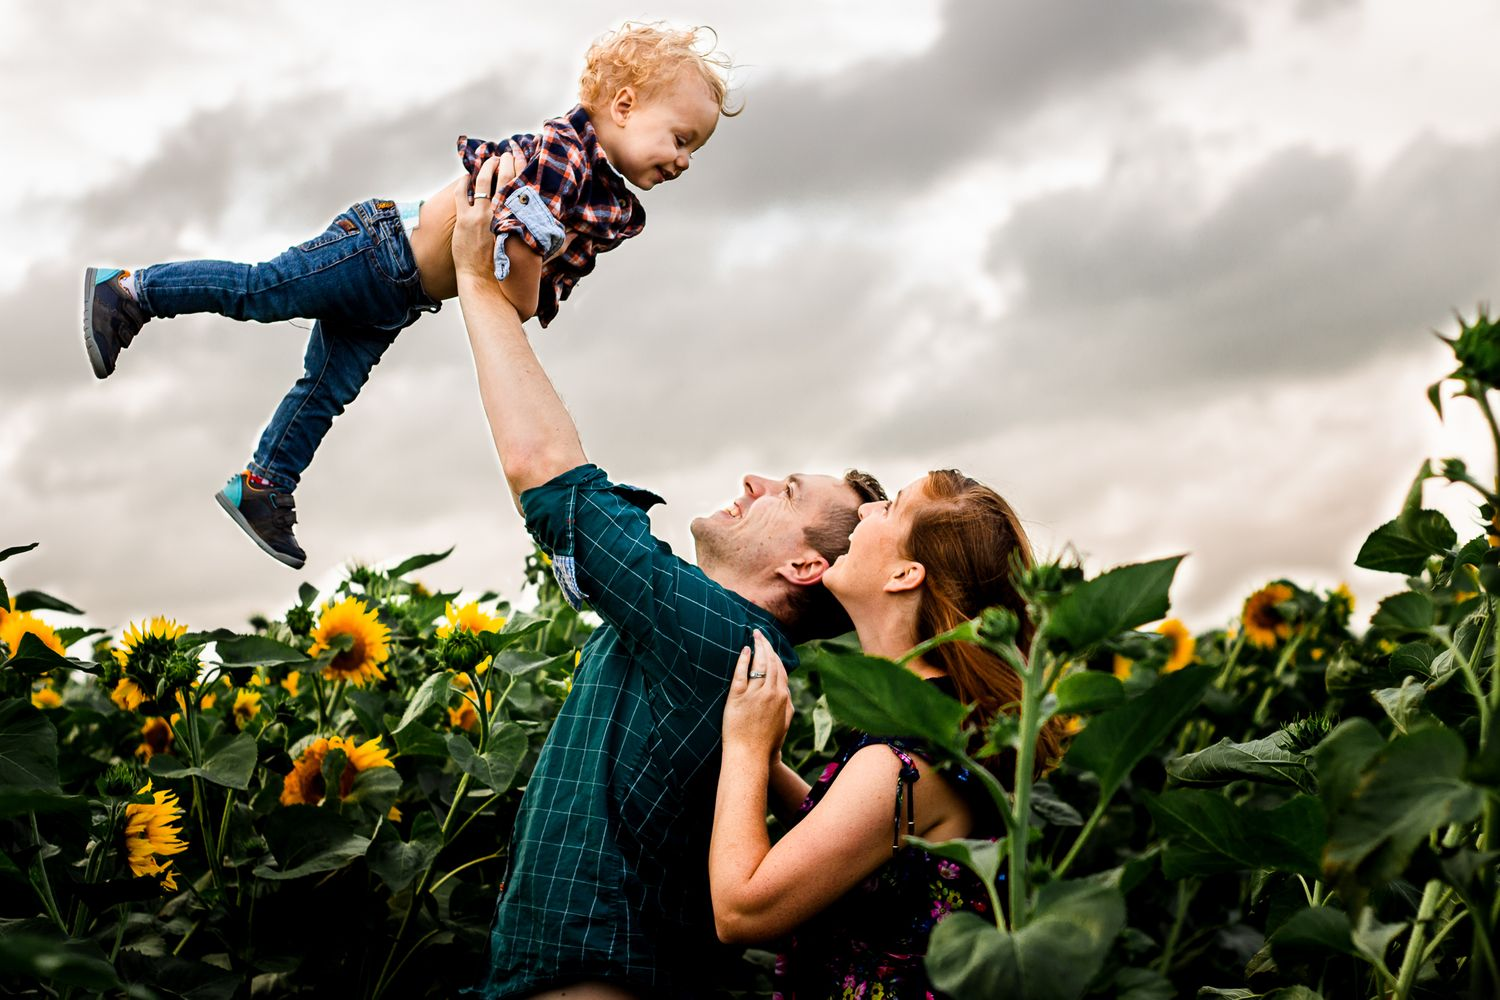 In a Sunflower field on Hayling Island parents joyfully lift their One year old Son into the overcast sky.